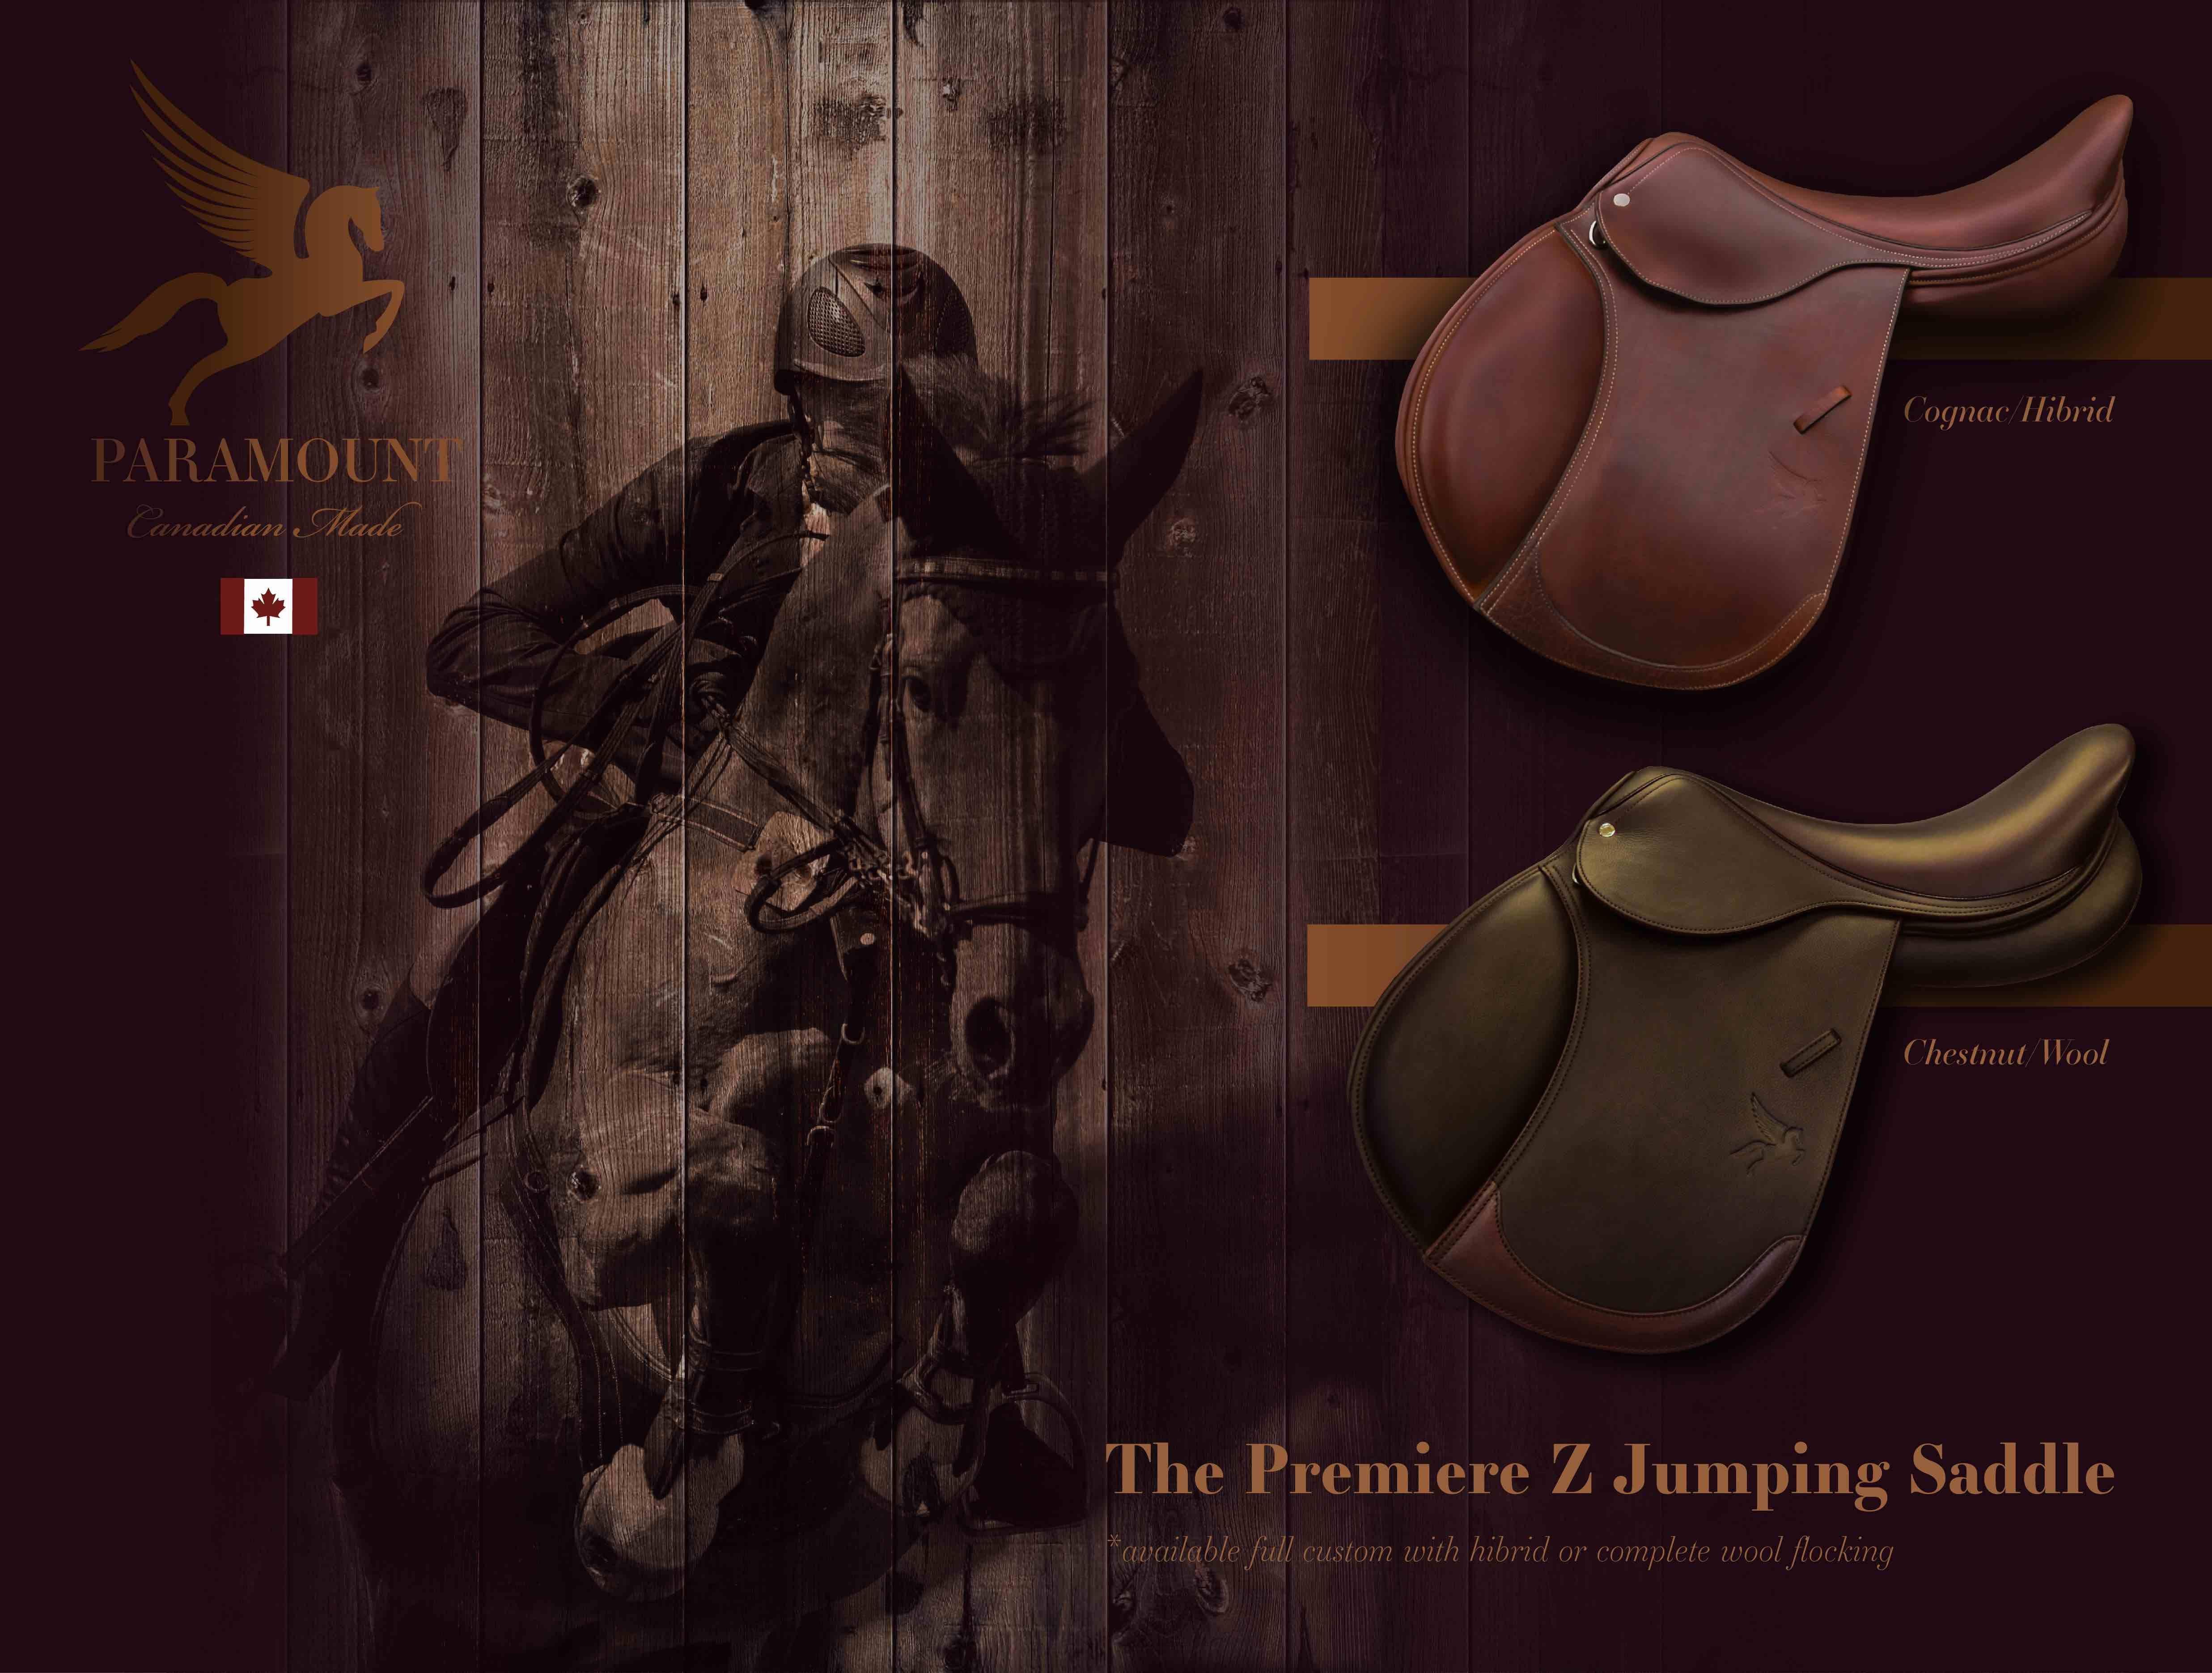 Did you know that a custom saddle can help you stay balanced